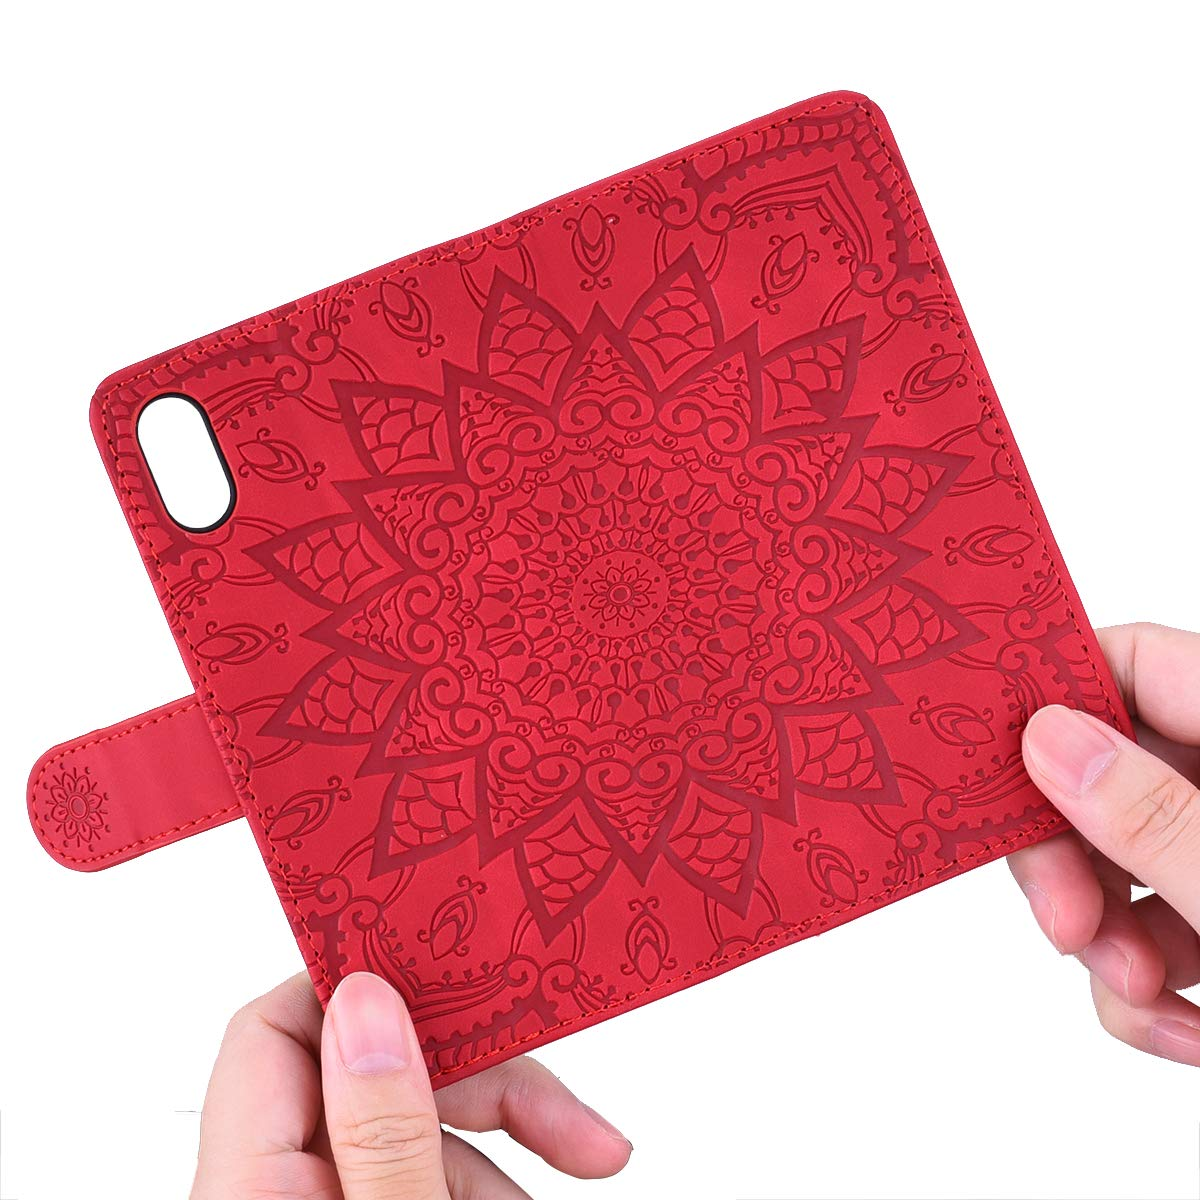 Jorisa Leather Wallet Case for Samsung Galaxy A10E,Retro Embossed Mandala Flower Pattern Flip Stand Case with Card Holder Magnetic Closure Book Style Purse Phone Cover,Pink